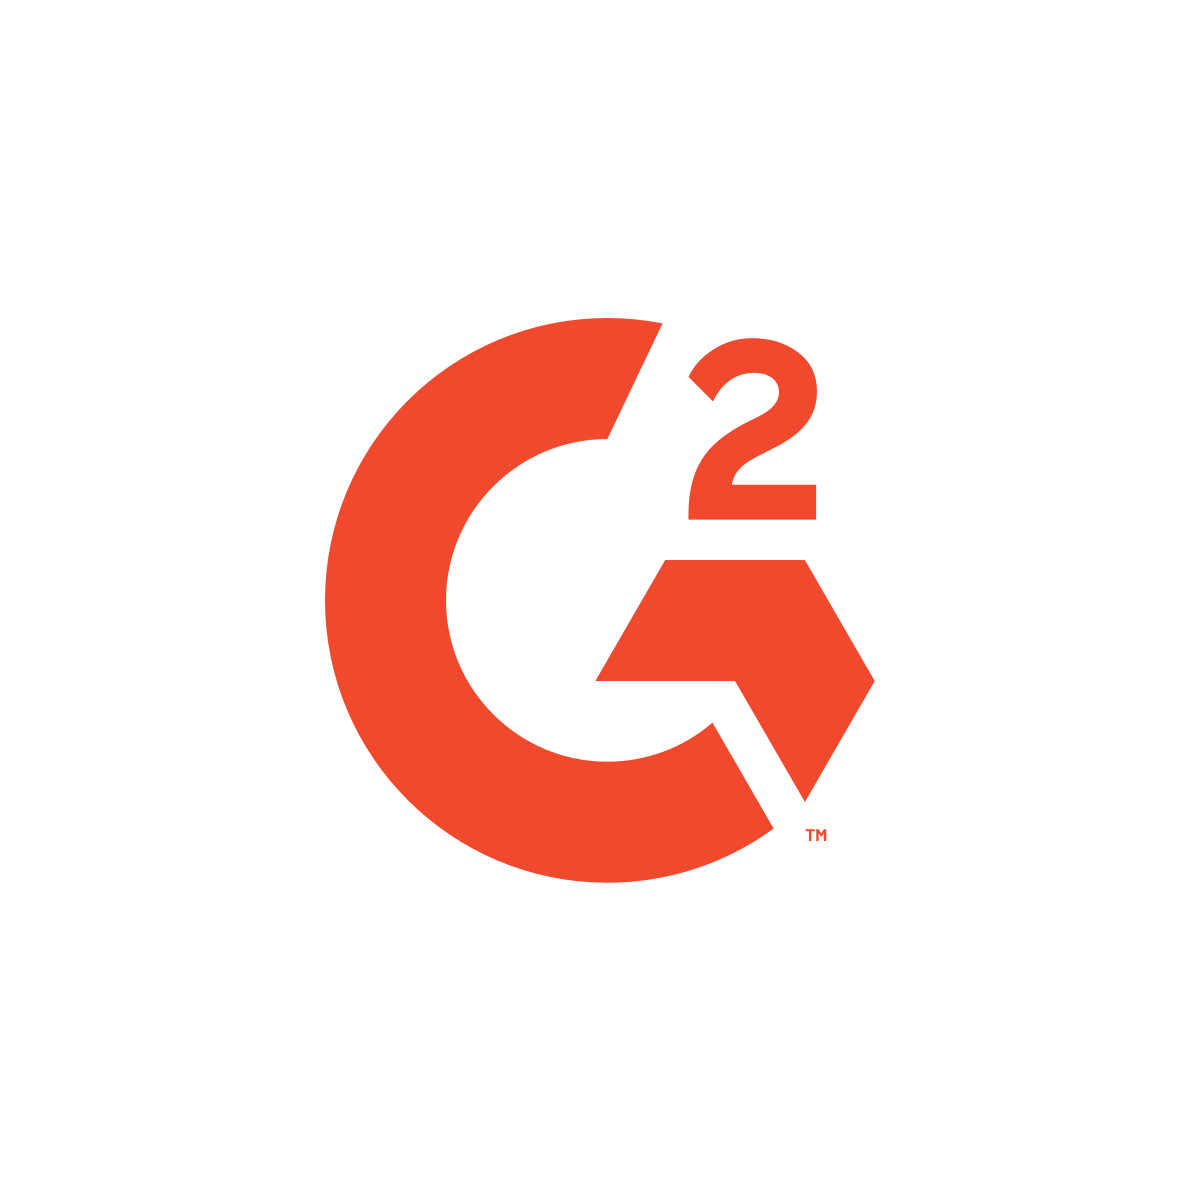 Comindware Receives Awards in G2's 2020 Reports for Workflow Management and BPM Software